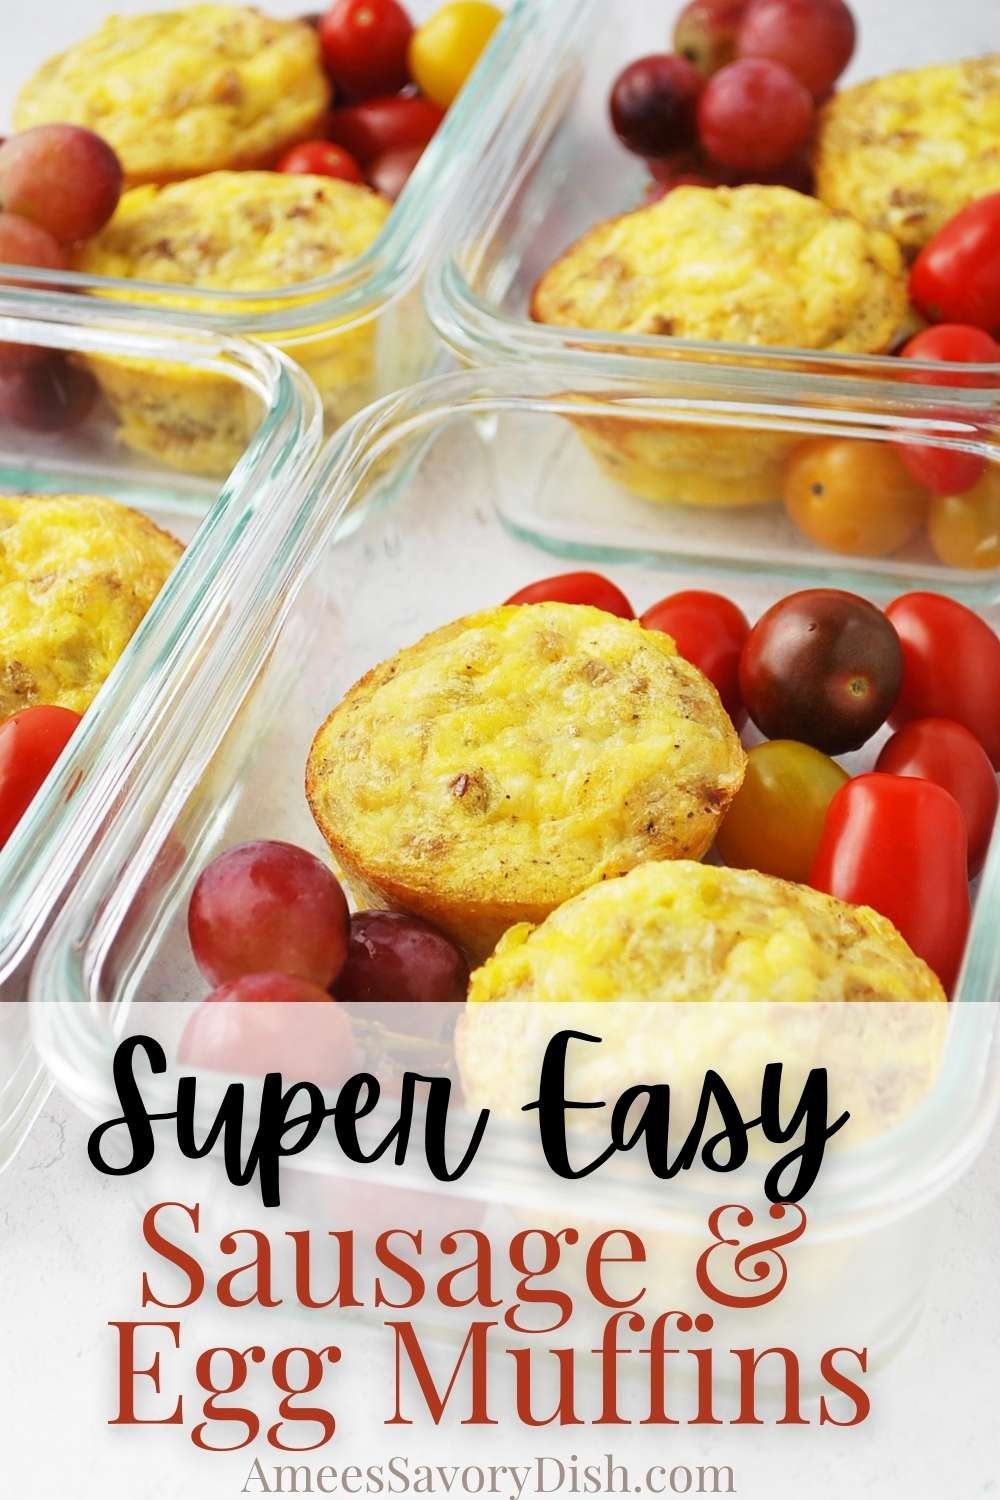 This easy recipe for sausage egg muffins is the perfect healthy breakfast for someone looking for a high-protein meal or snack and great for meal prep! #eggmuffins #sausageeggmuffins #highproteinbreakfast #eggcups #bakedeggs via @Ameessavorydish